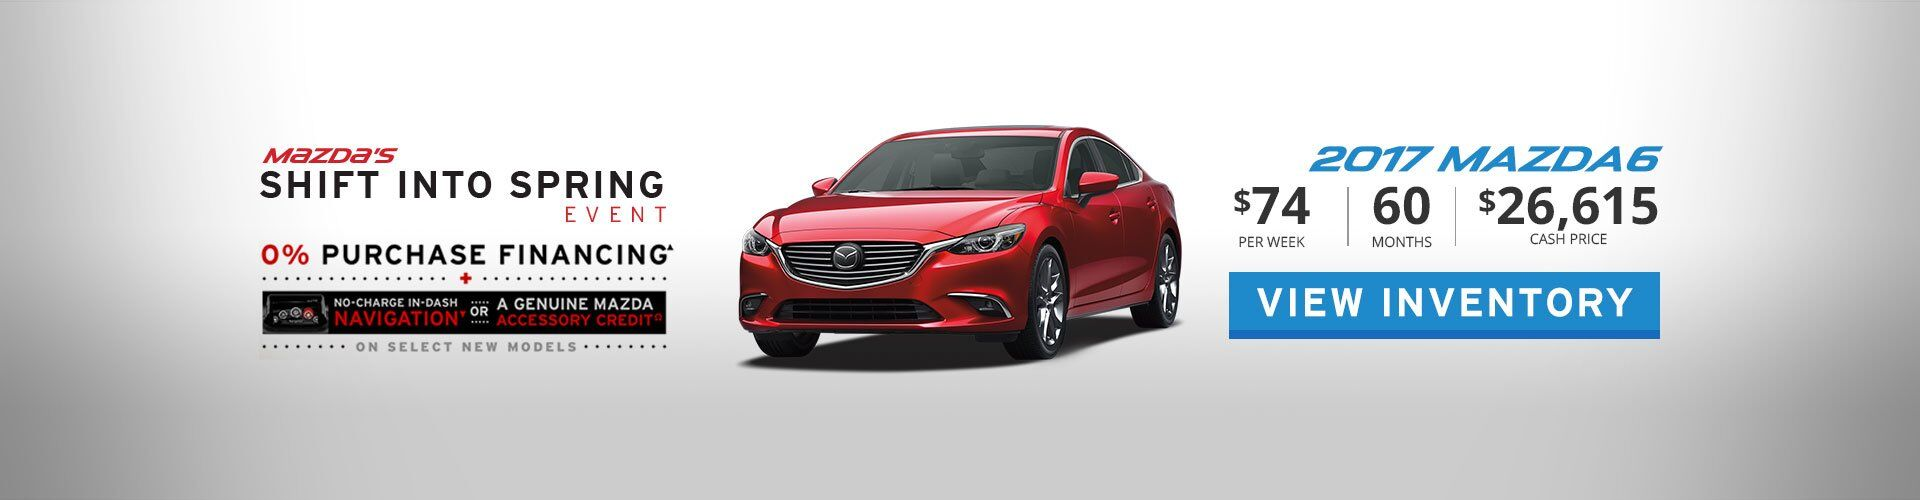 2017 Mazda6 4dr Sdn 2.5L AT GX